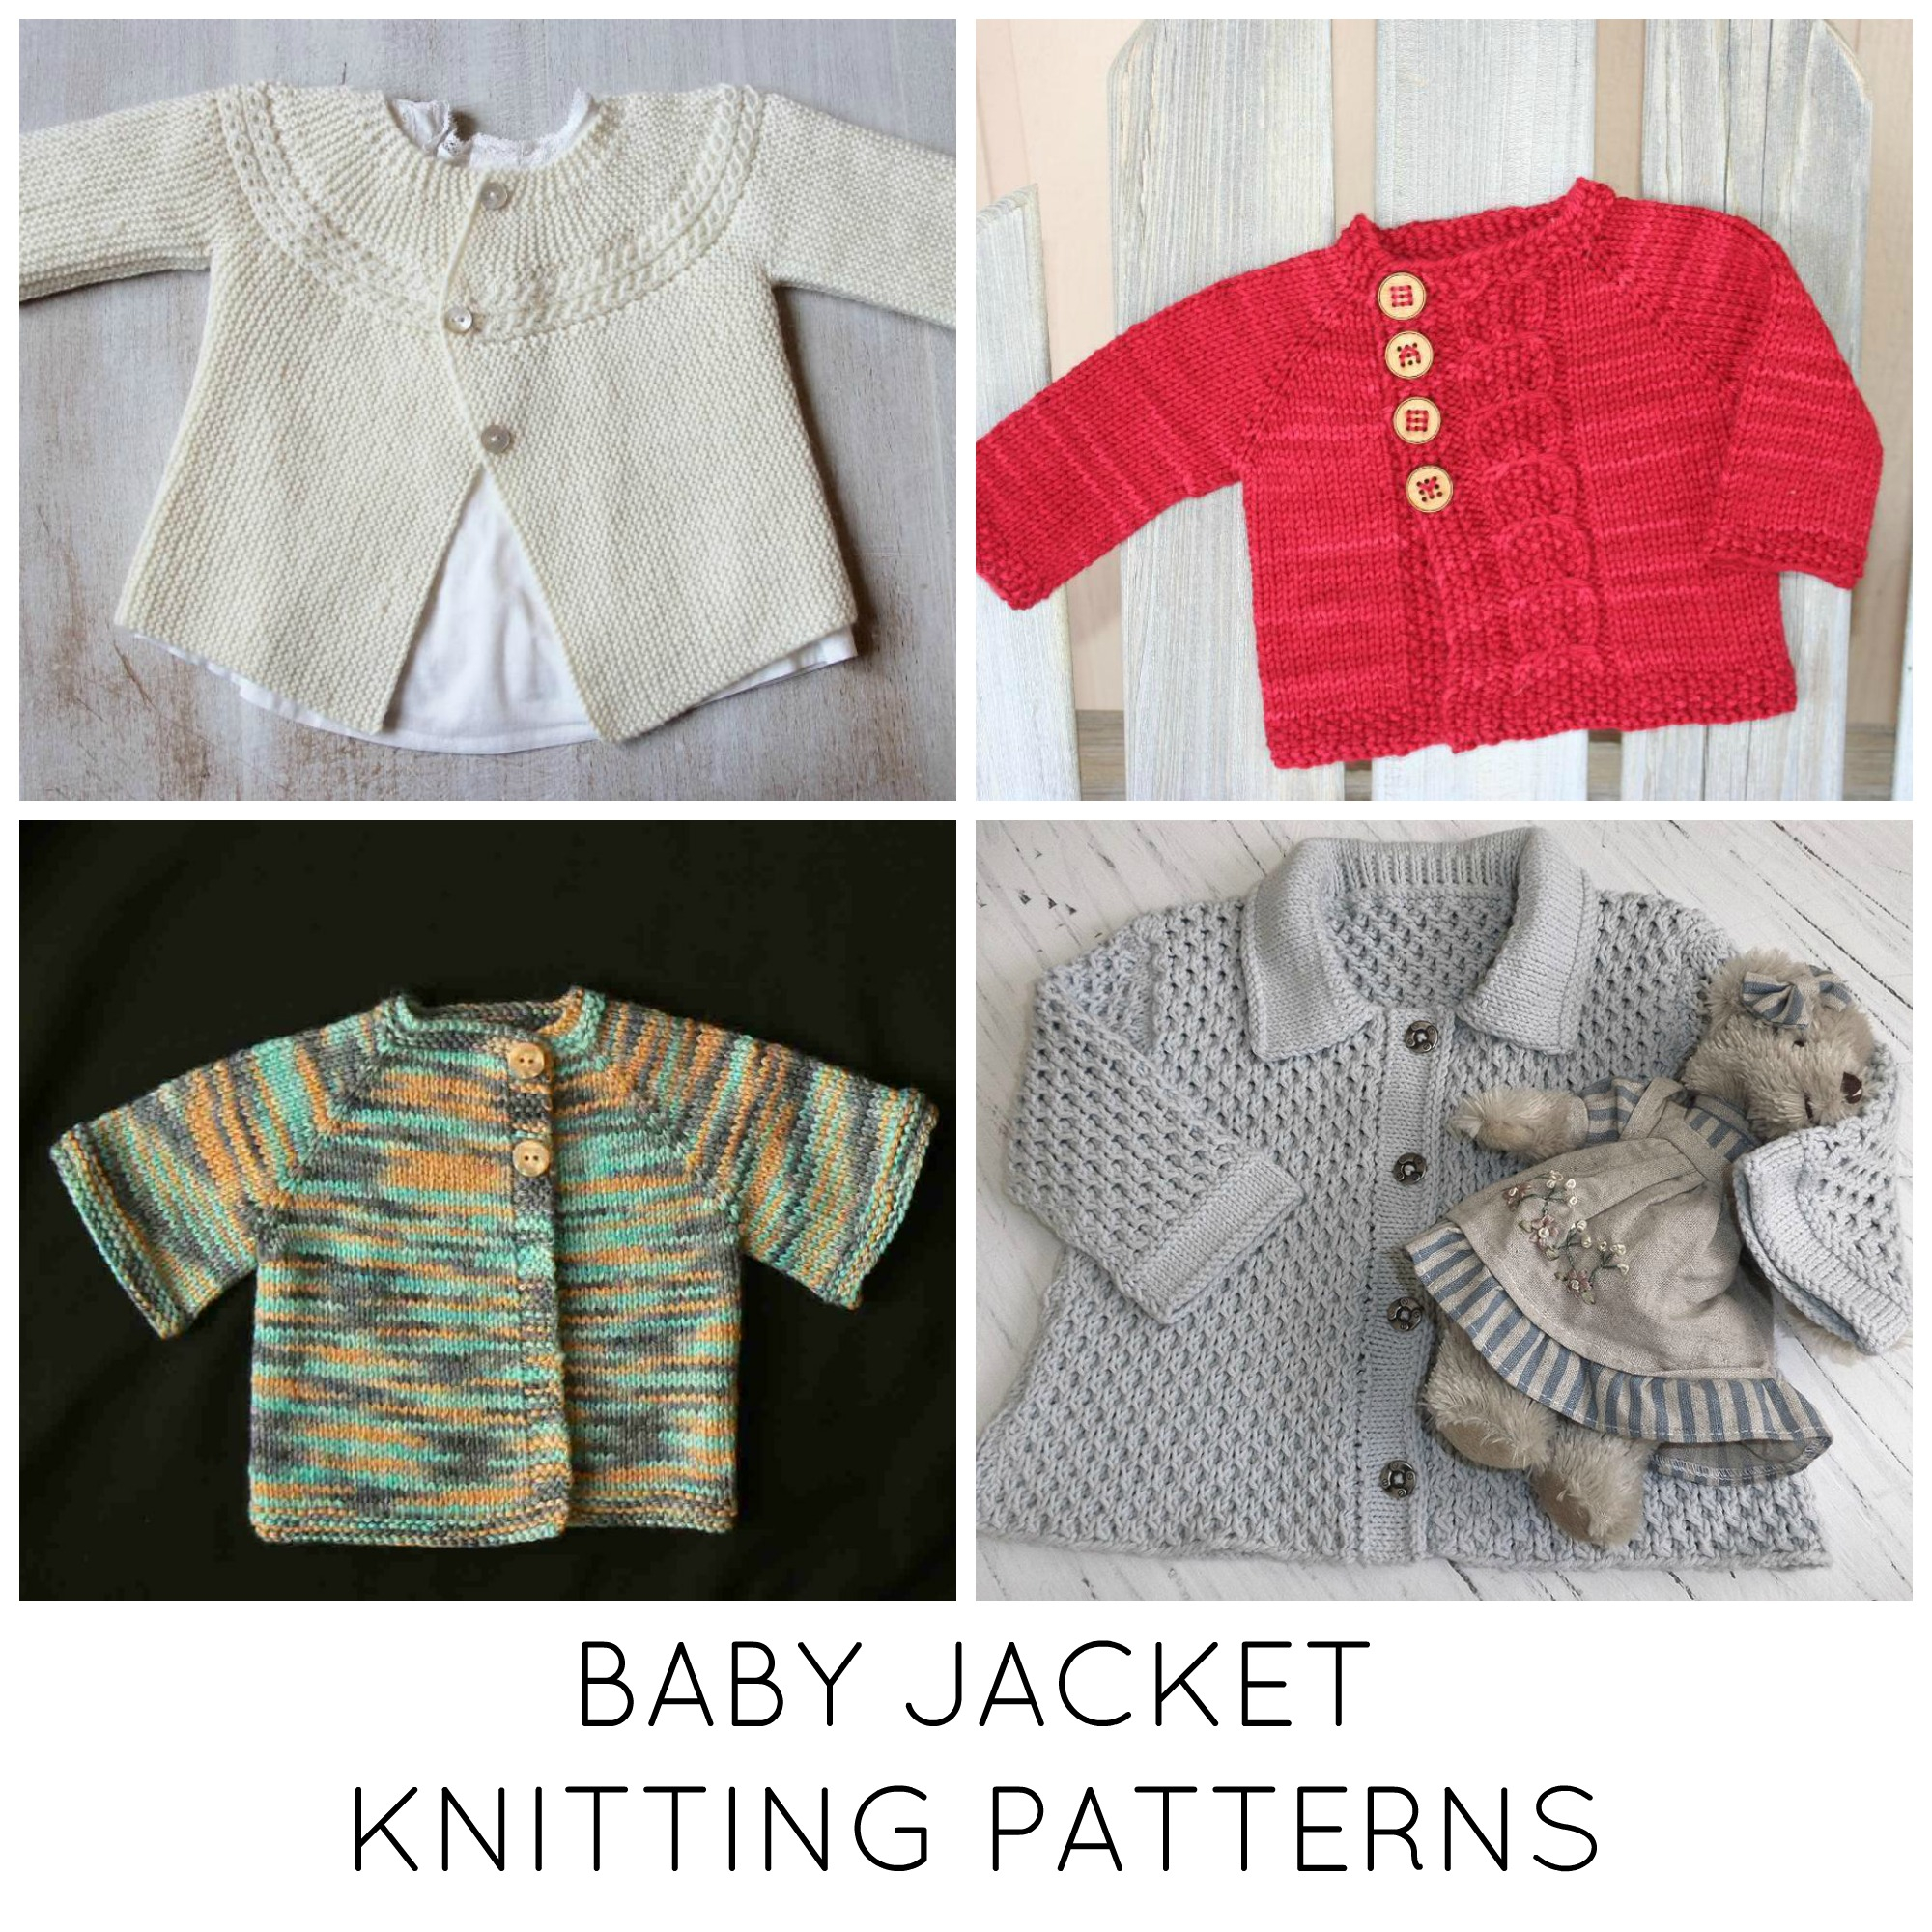 Knitted Coat Patterns 10 Ba Jacket Knitting Patterns Youll Love